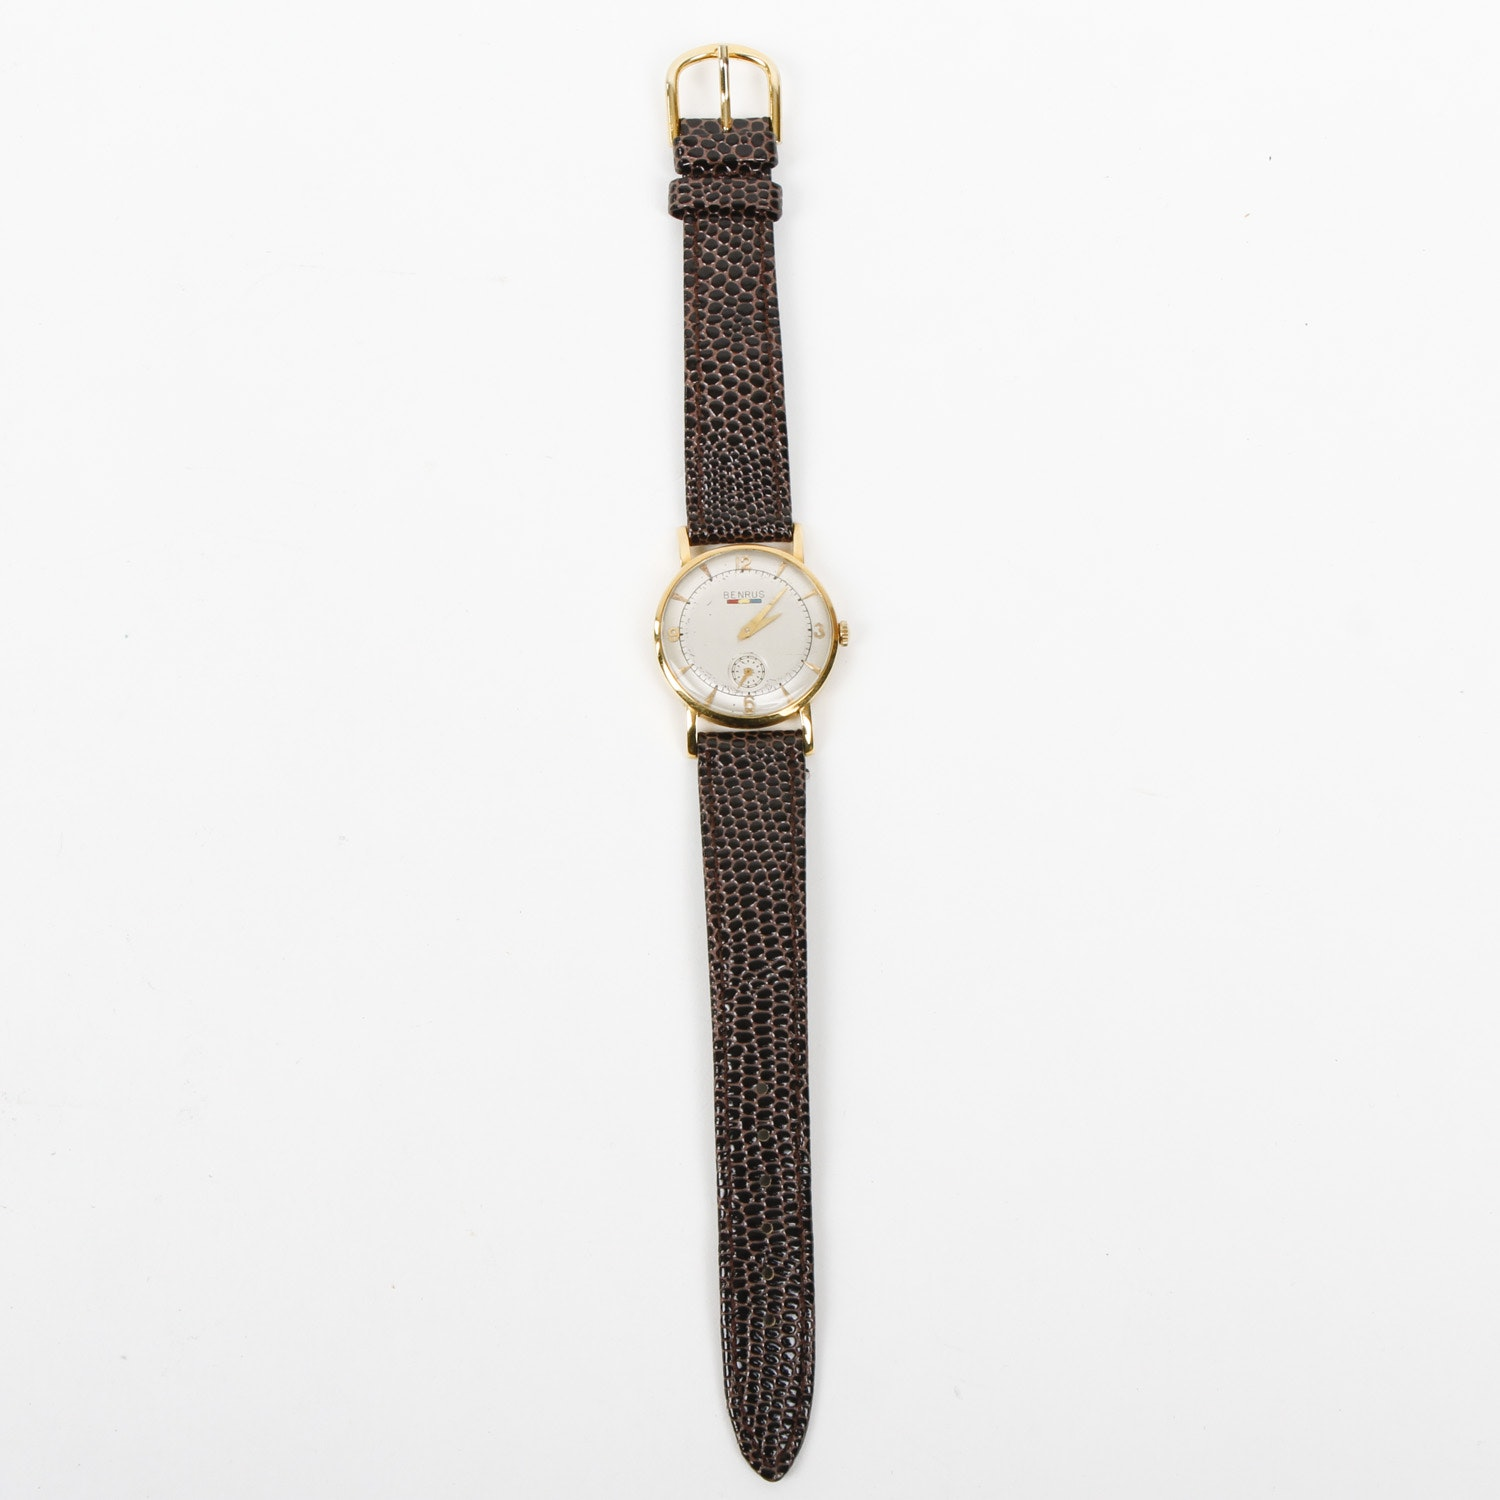 Vintage Benrus 18K Gold Wristwatch